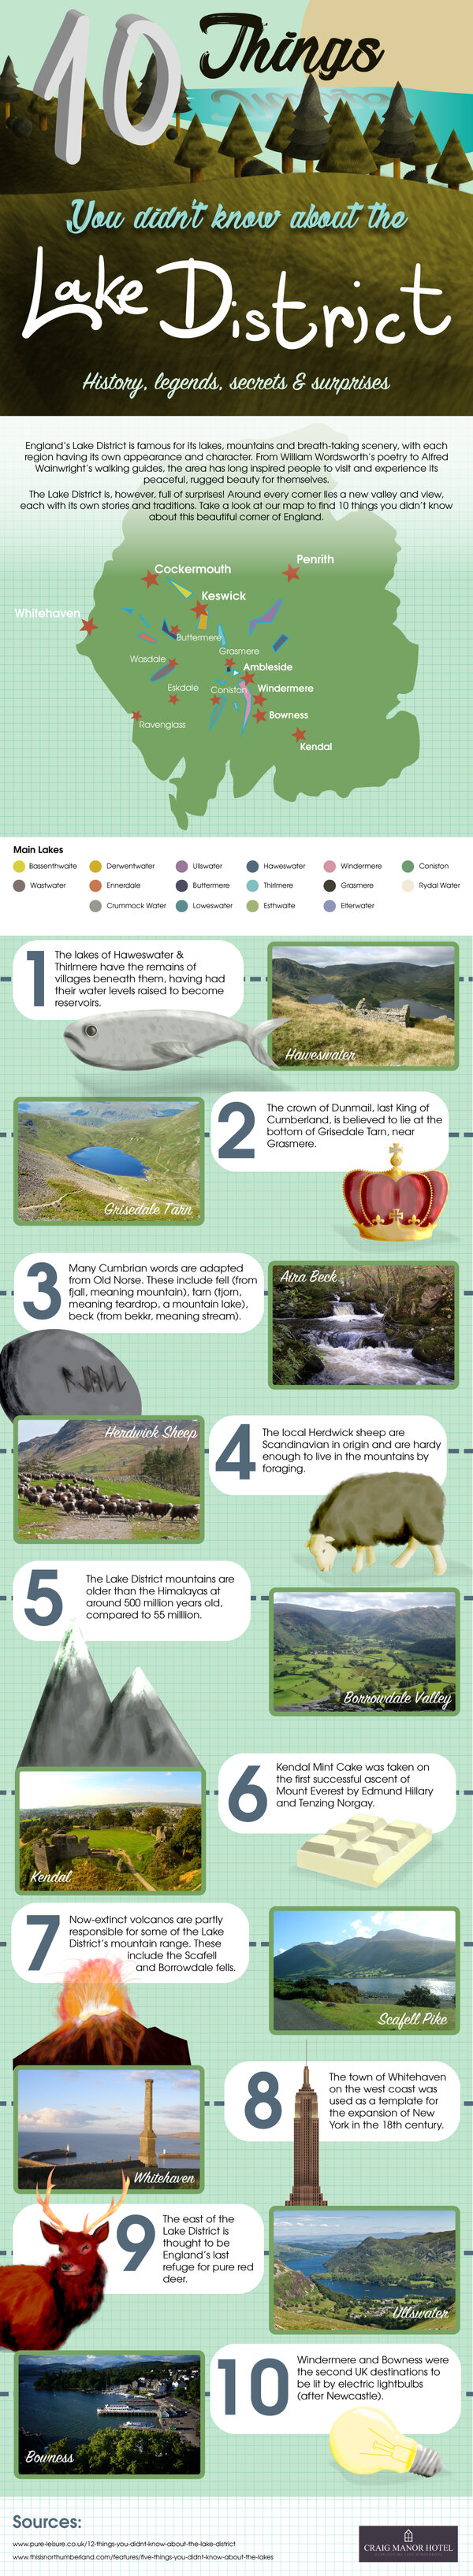 10 Things You Didn't Know About The Lake District